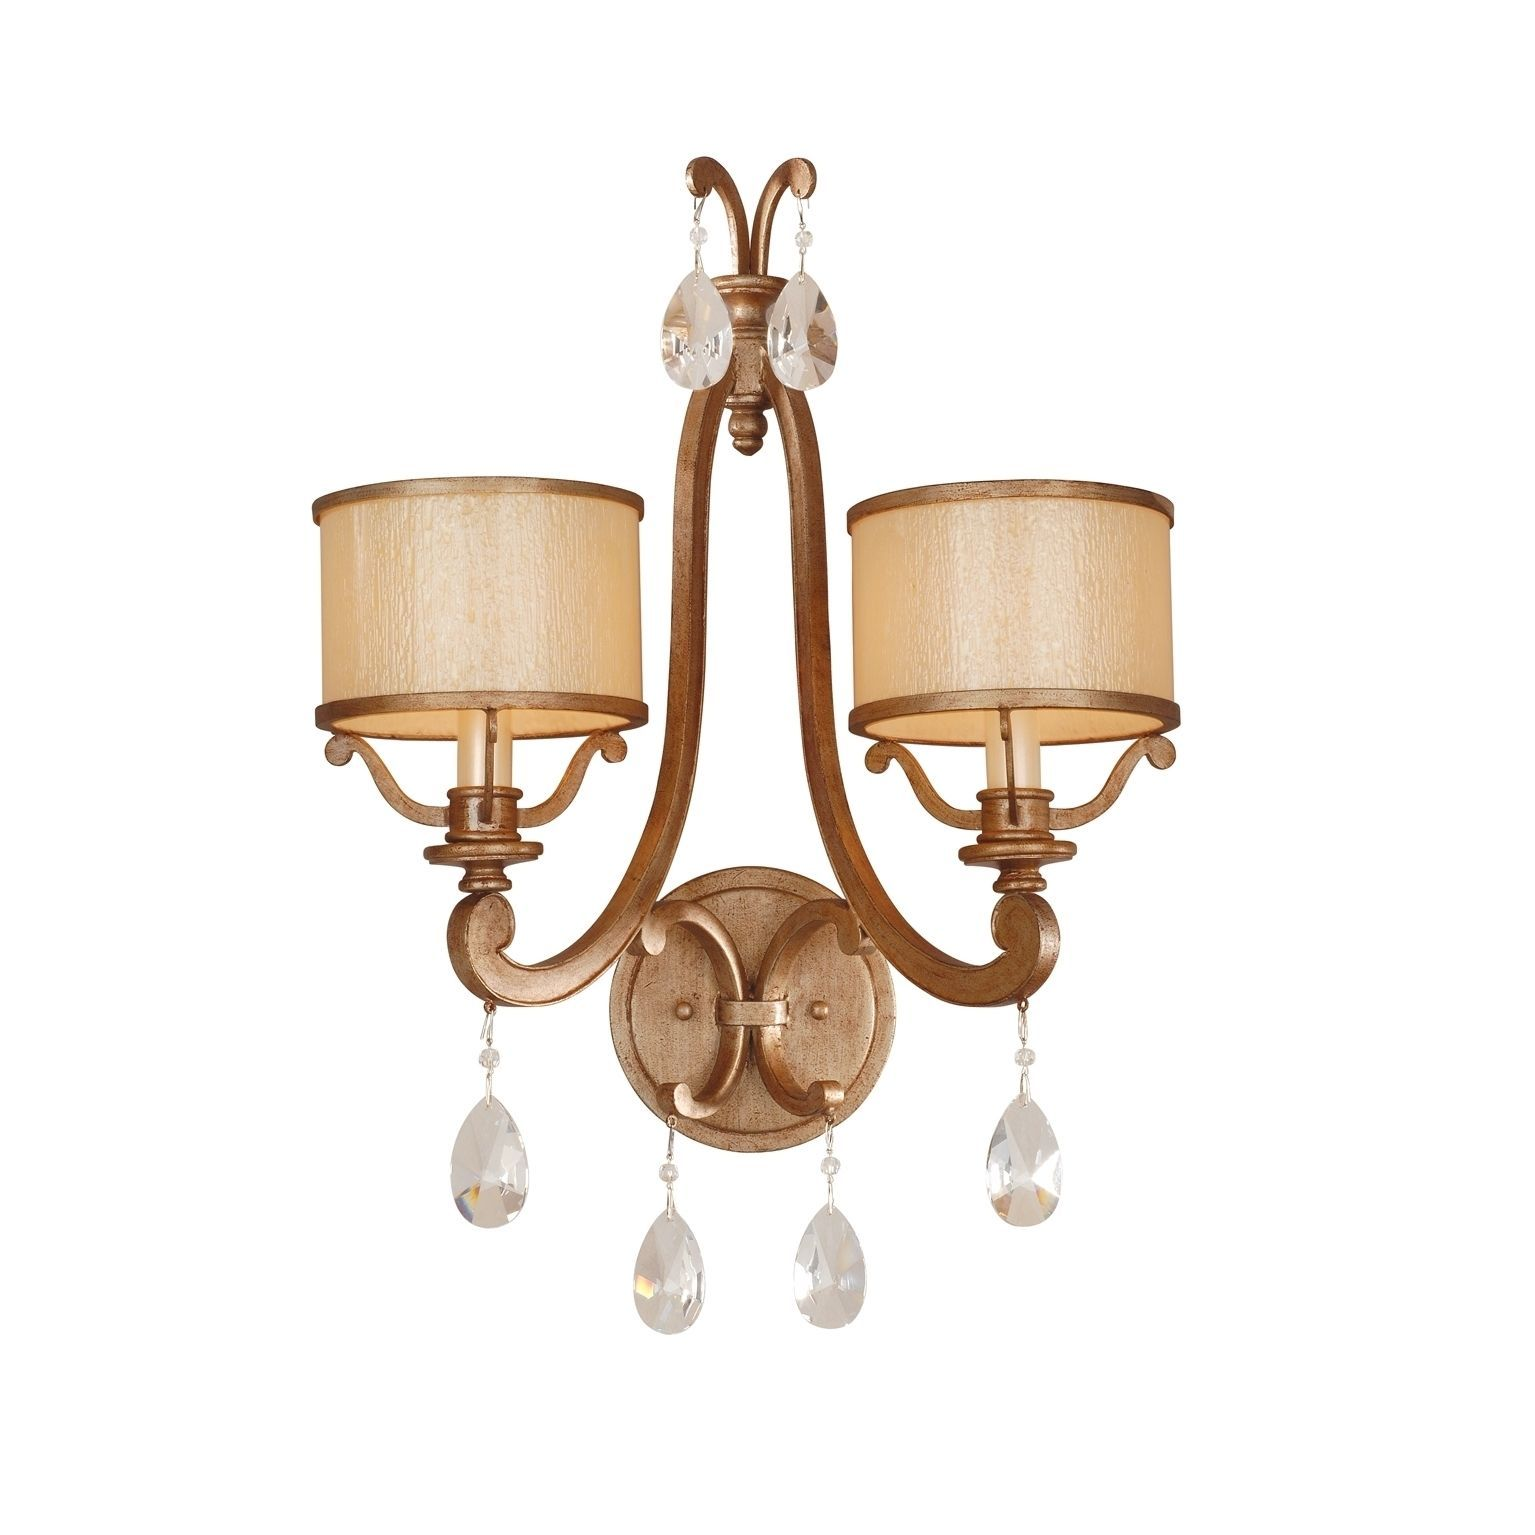 Corbett Lighting Roma 2-light Wall Sconce